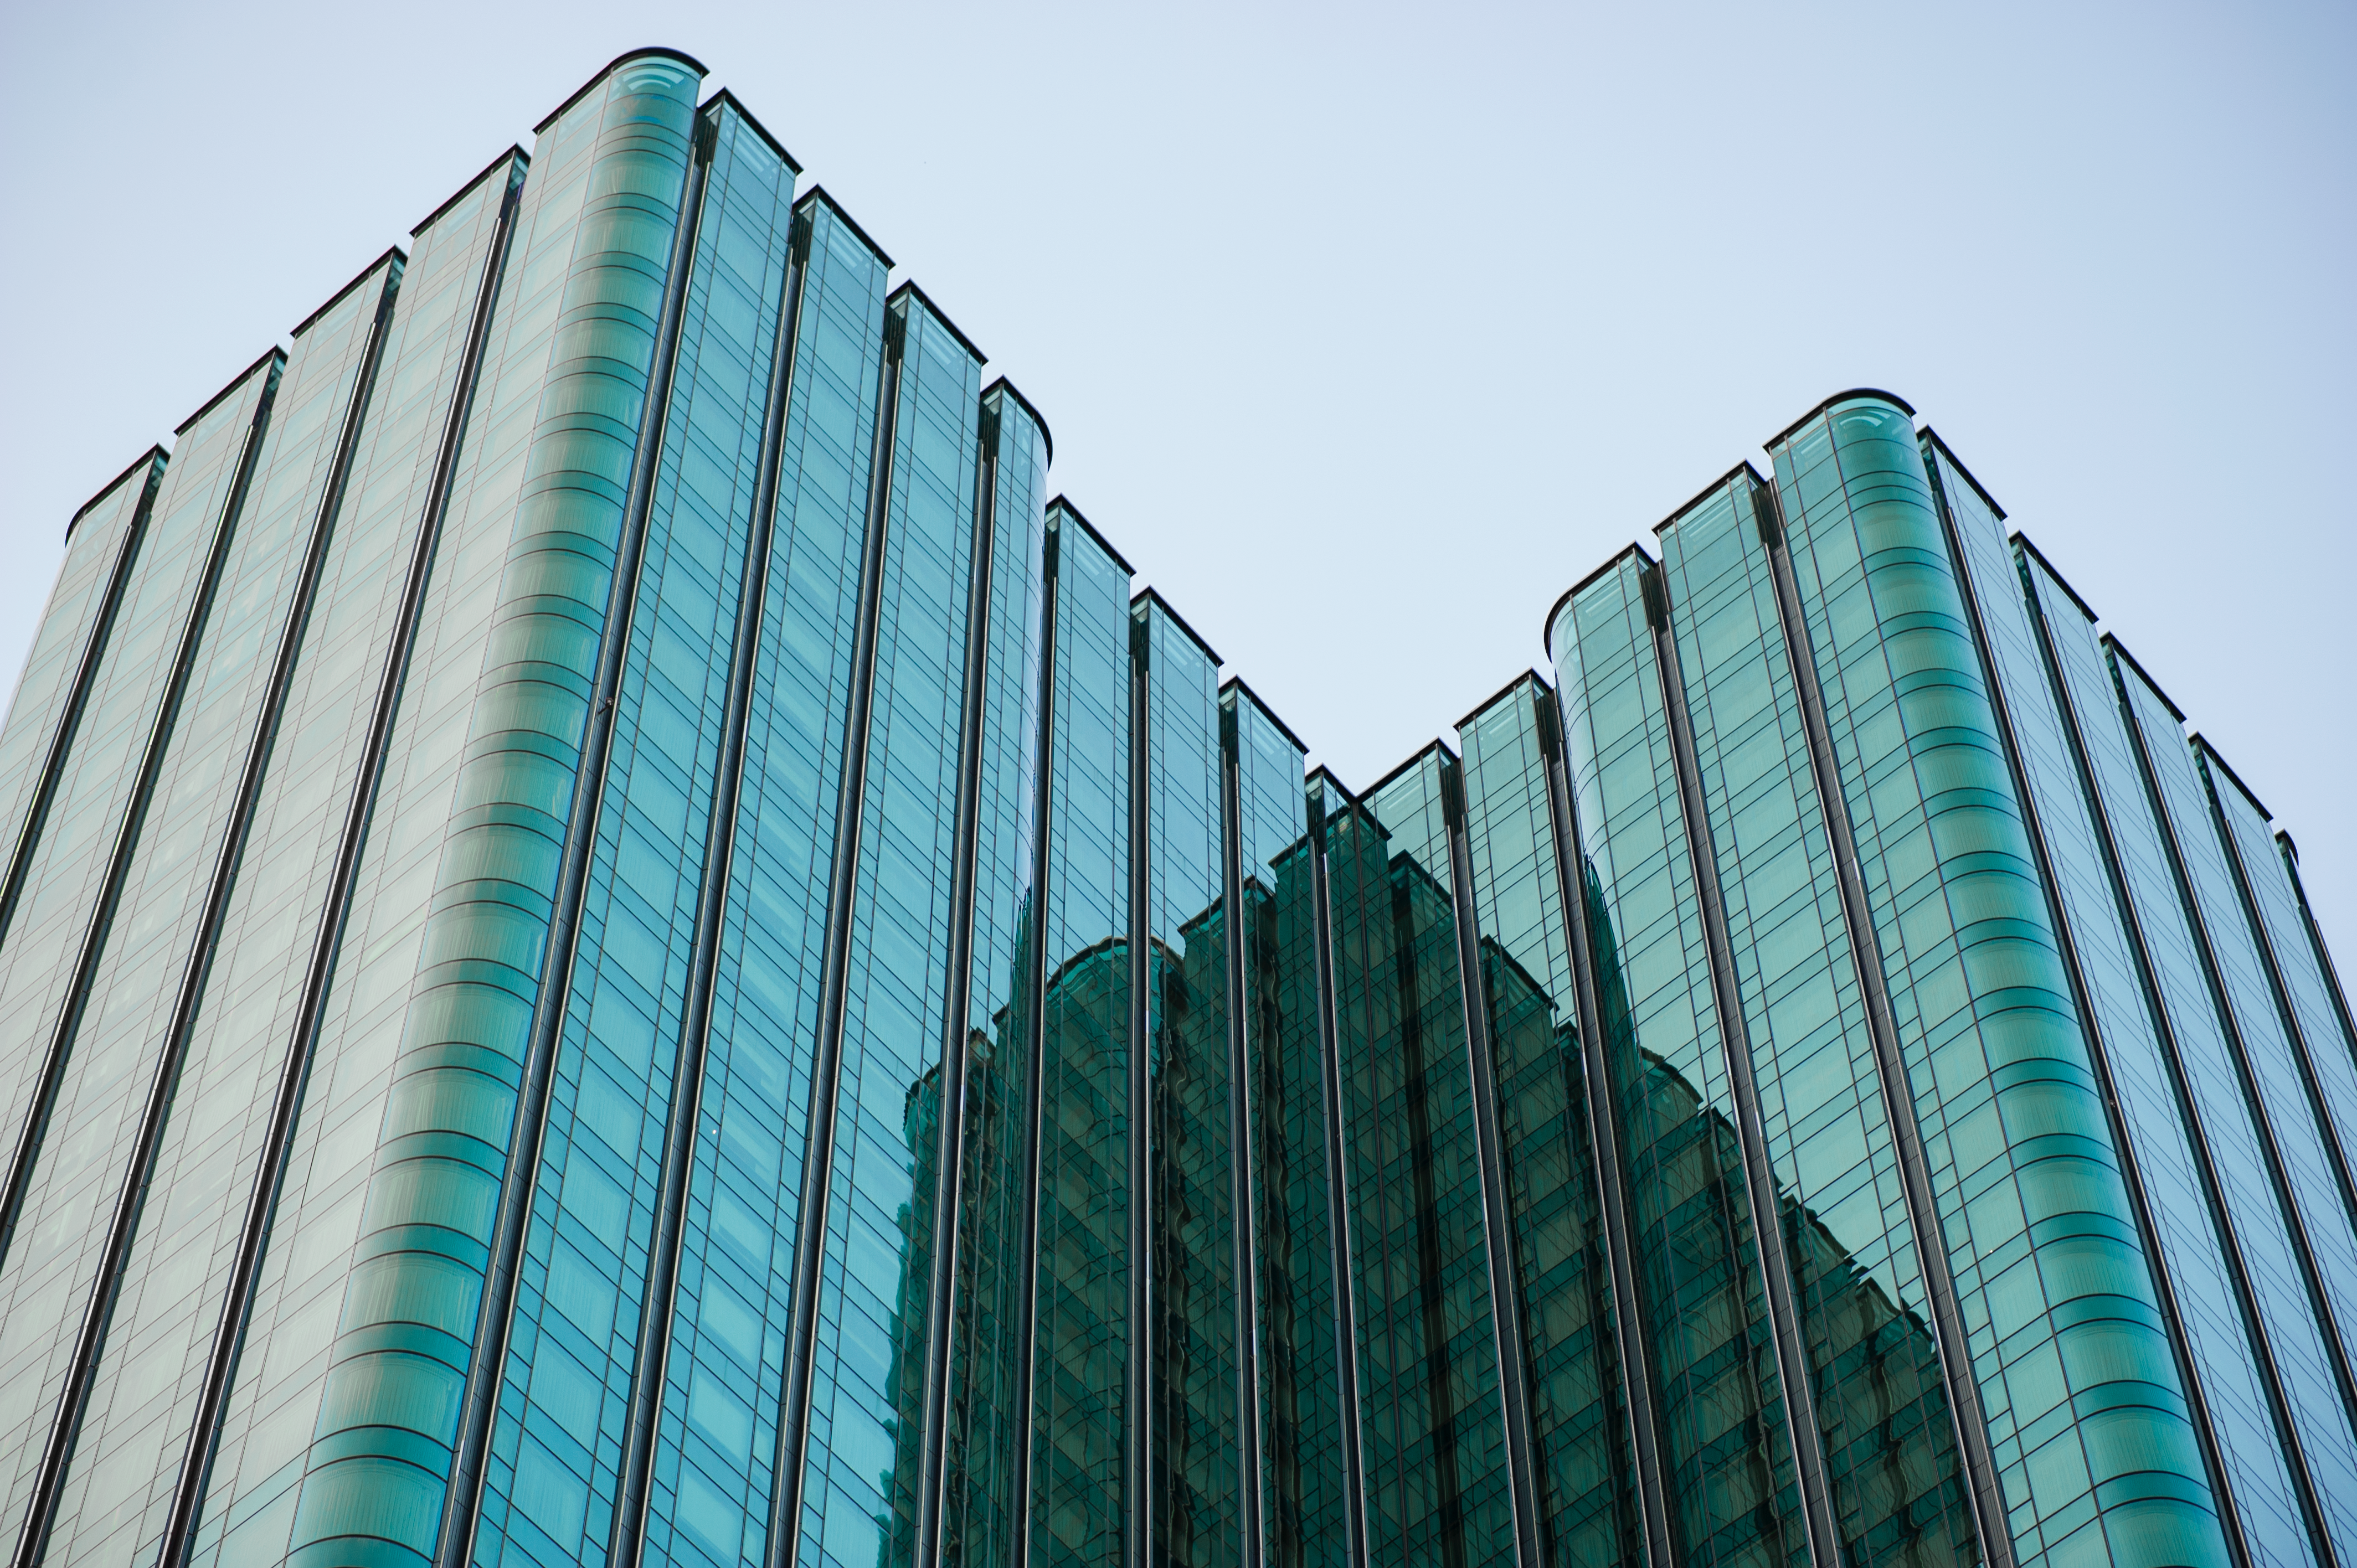 Blue Glass Skyscraper, Office, Windows, Urban, Tower, HQ Photo